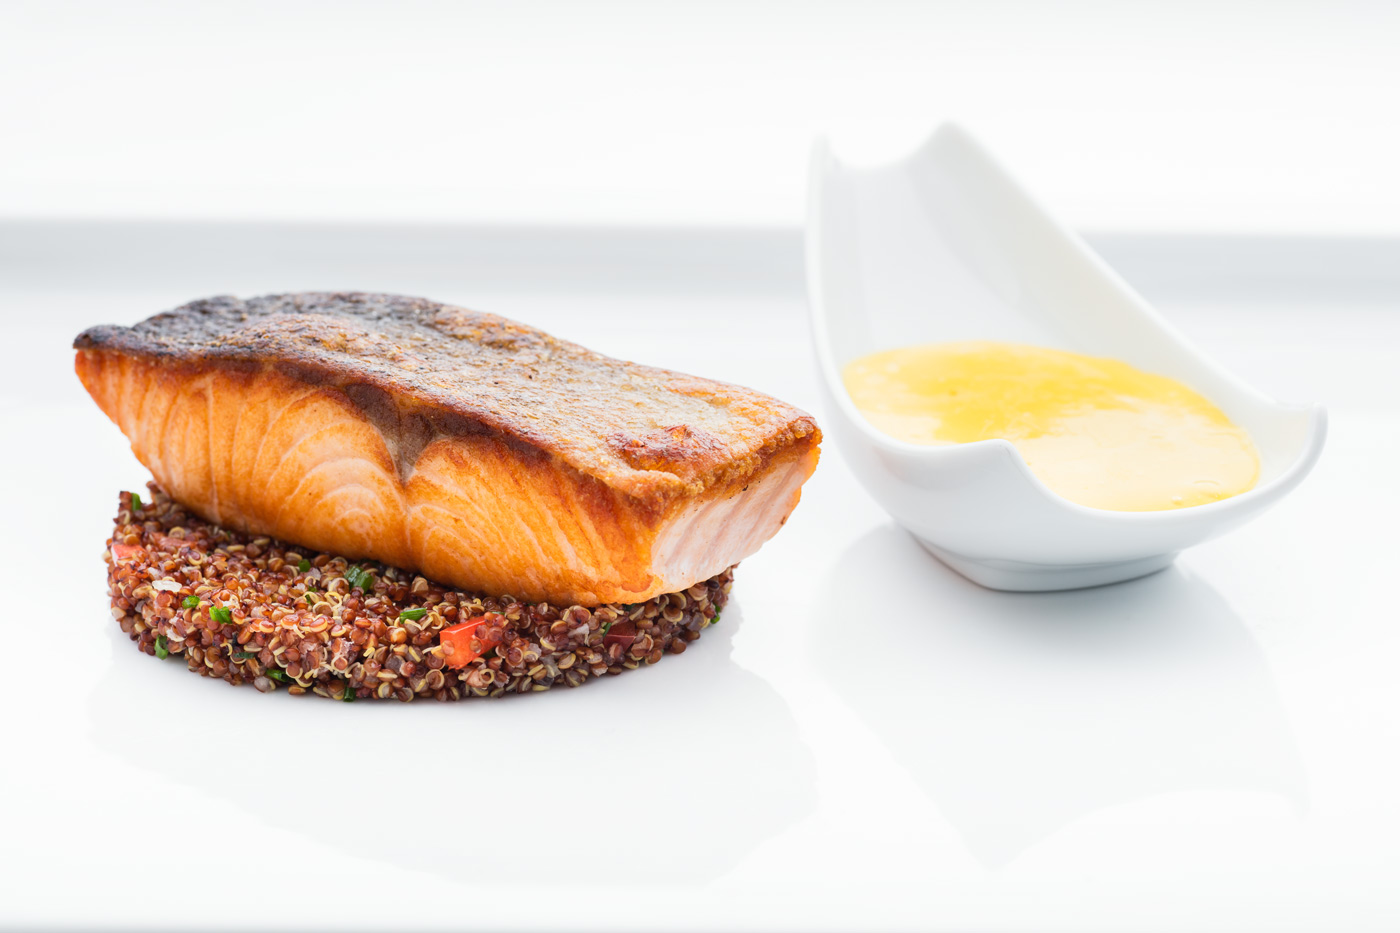 Plate with salmon steak on lentils